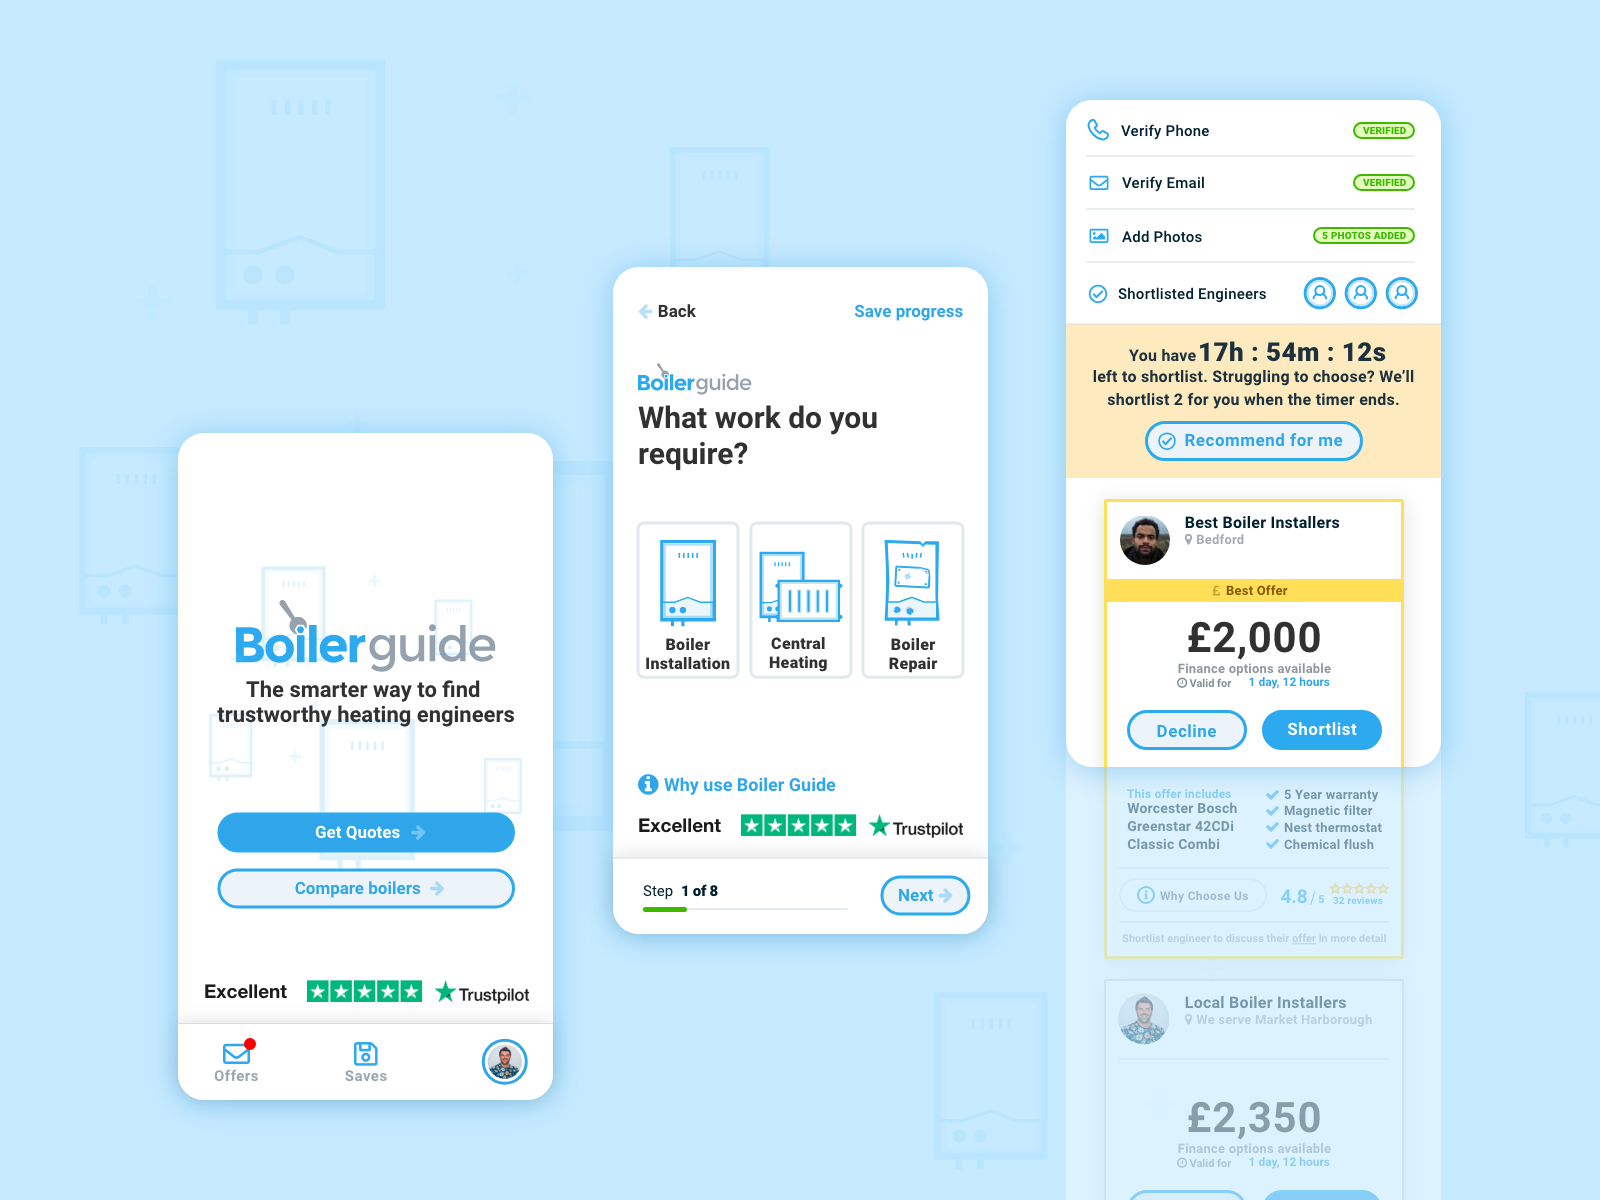 The relaunched Boiler Guide website